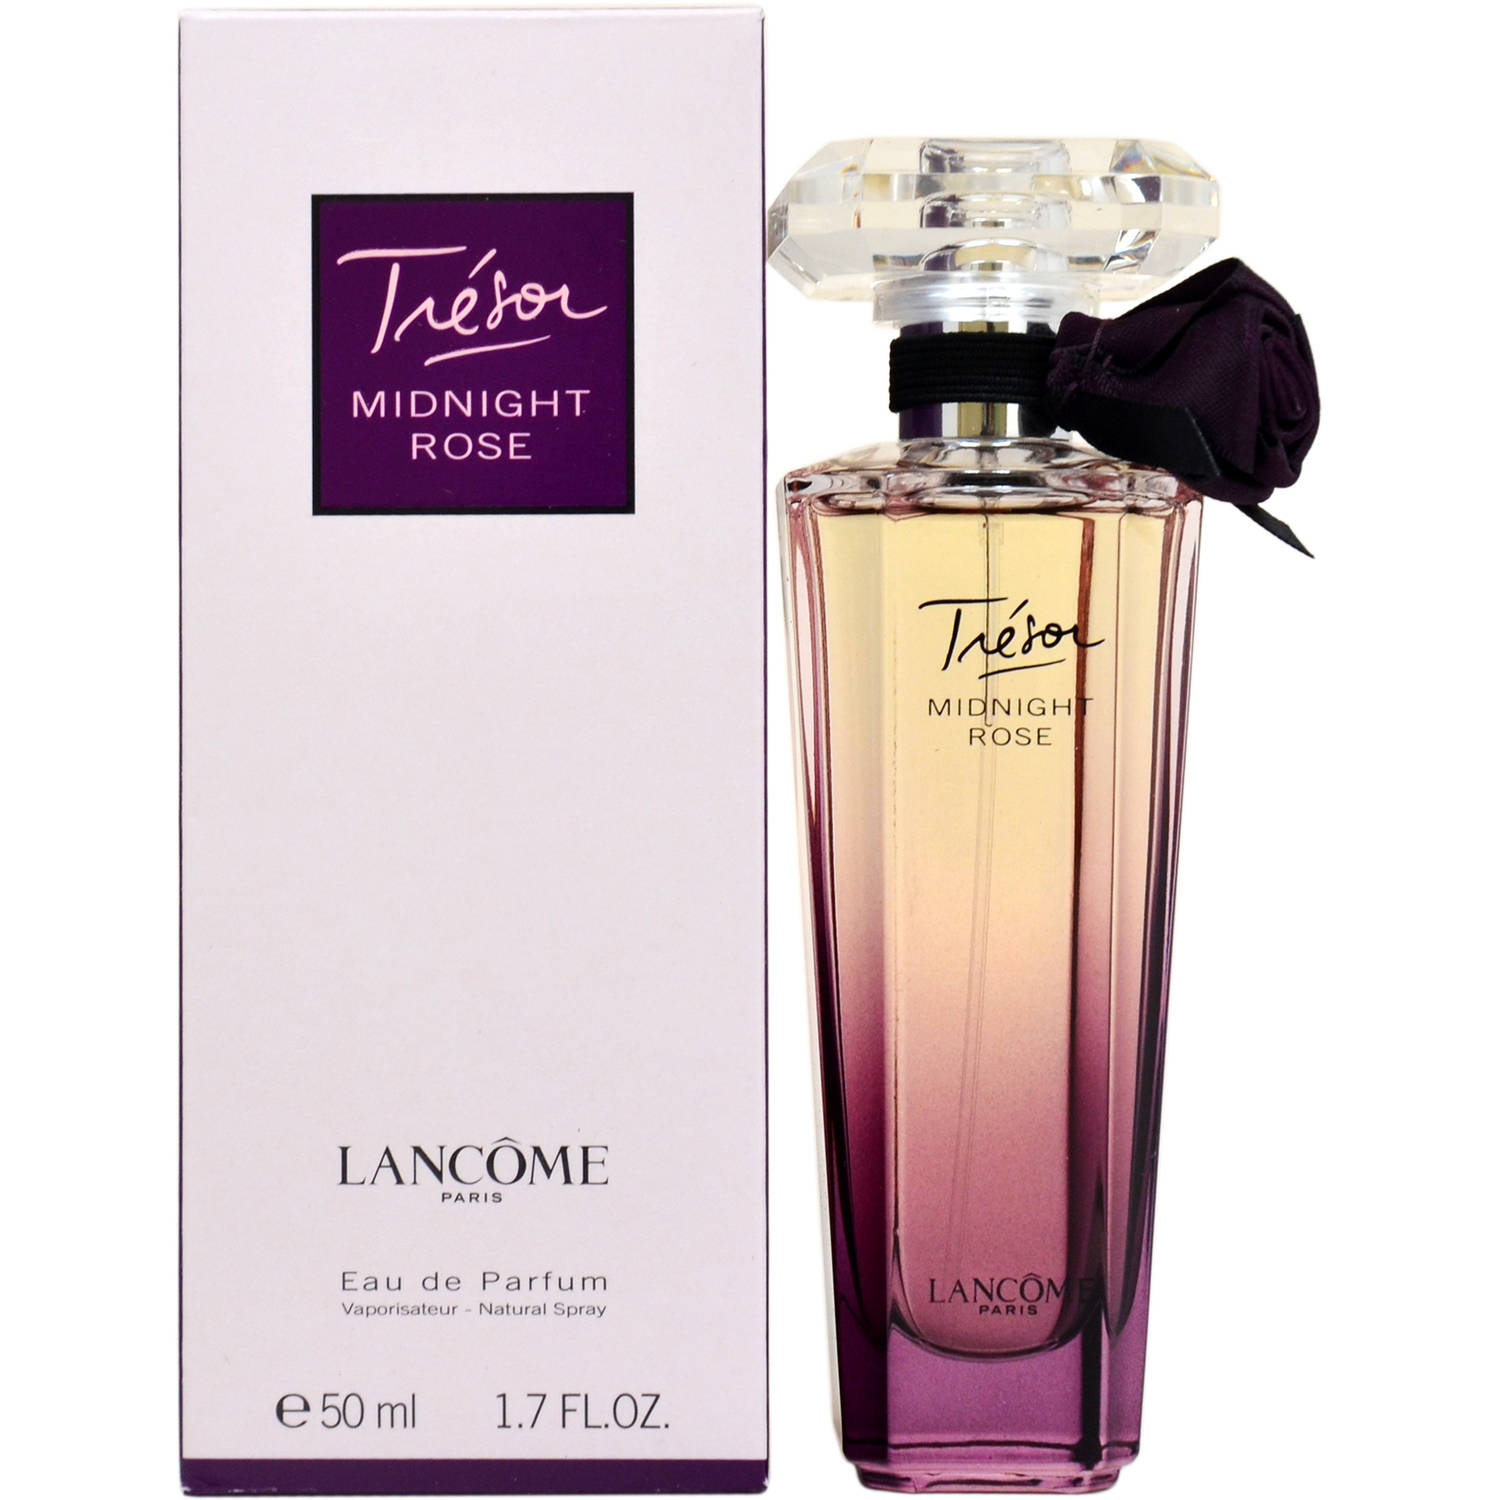 Lancome Tresor Midnight Rose for Women Eau de Parfum, 1.7 oz